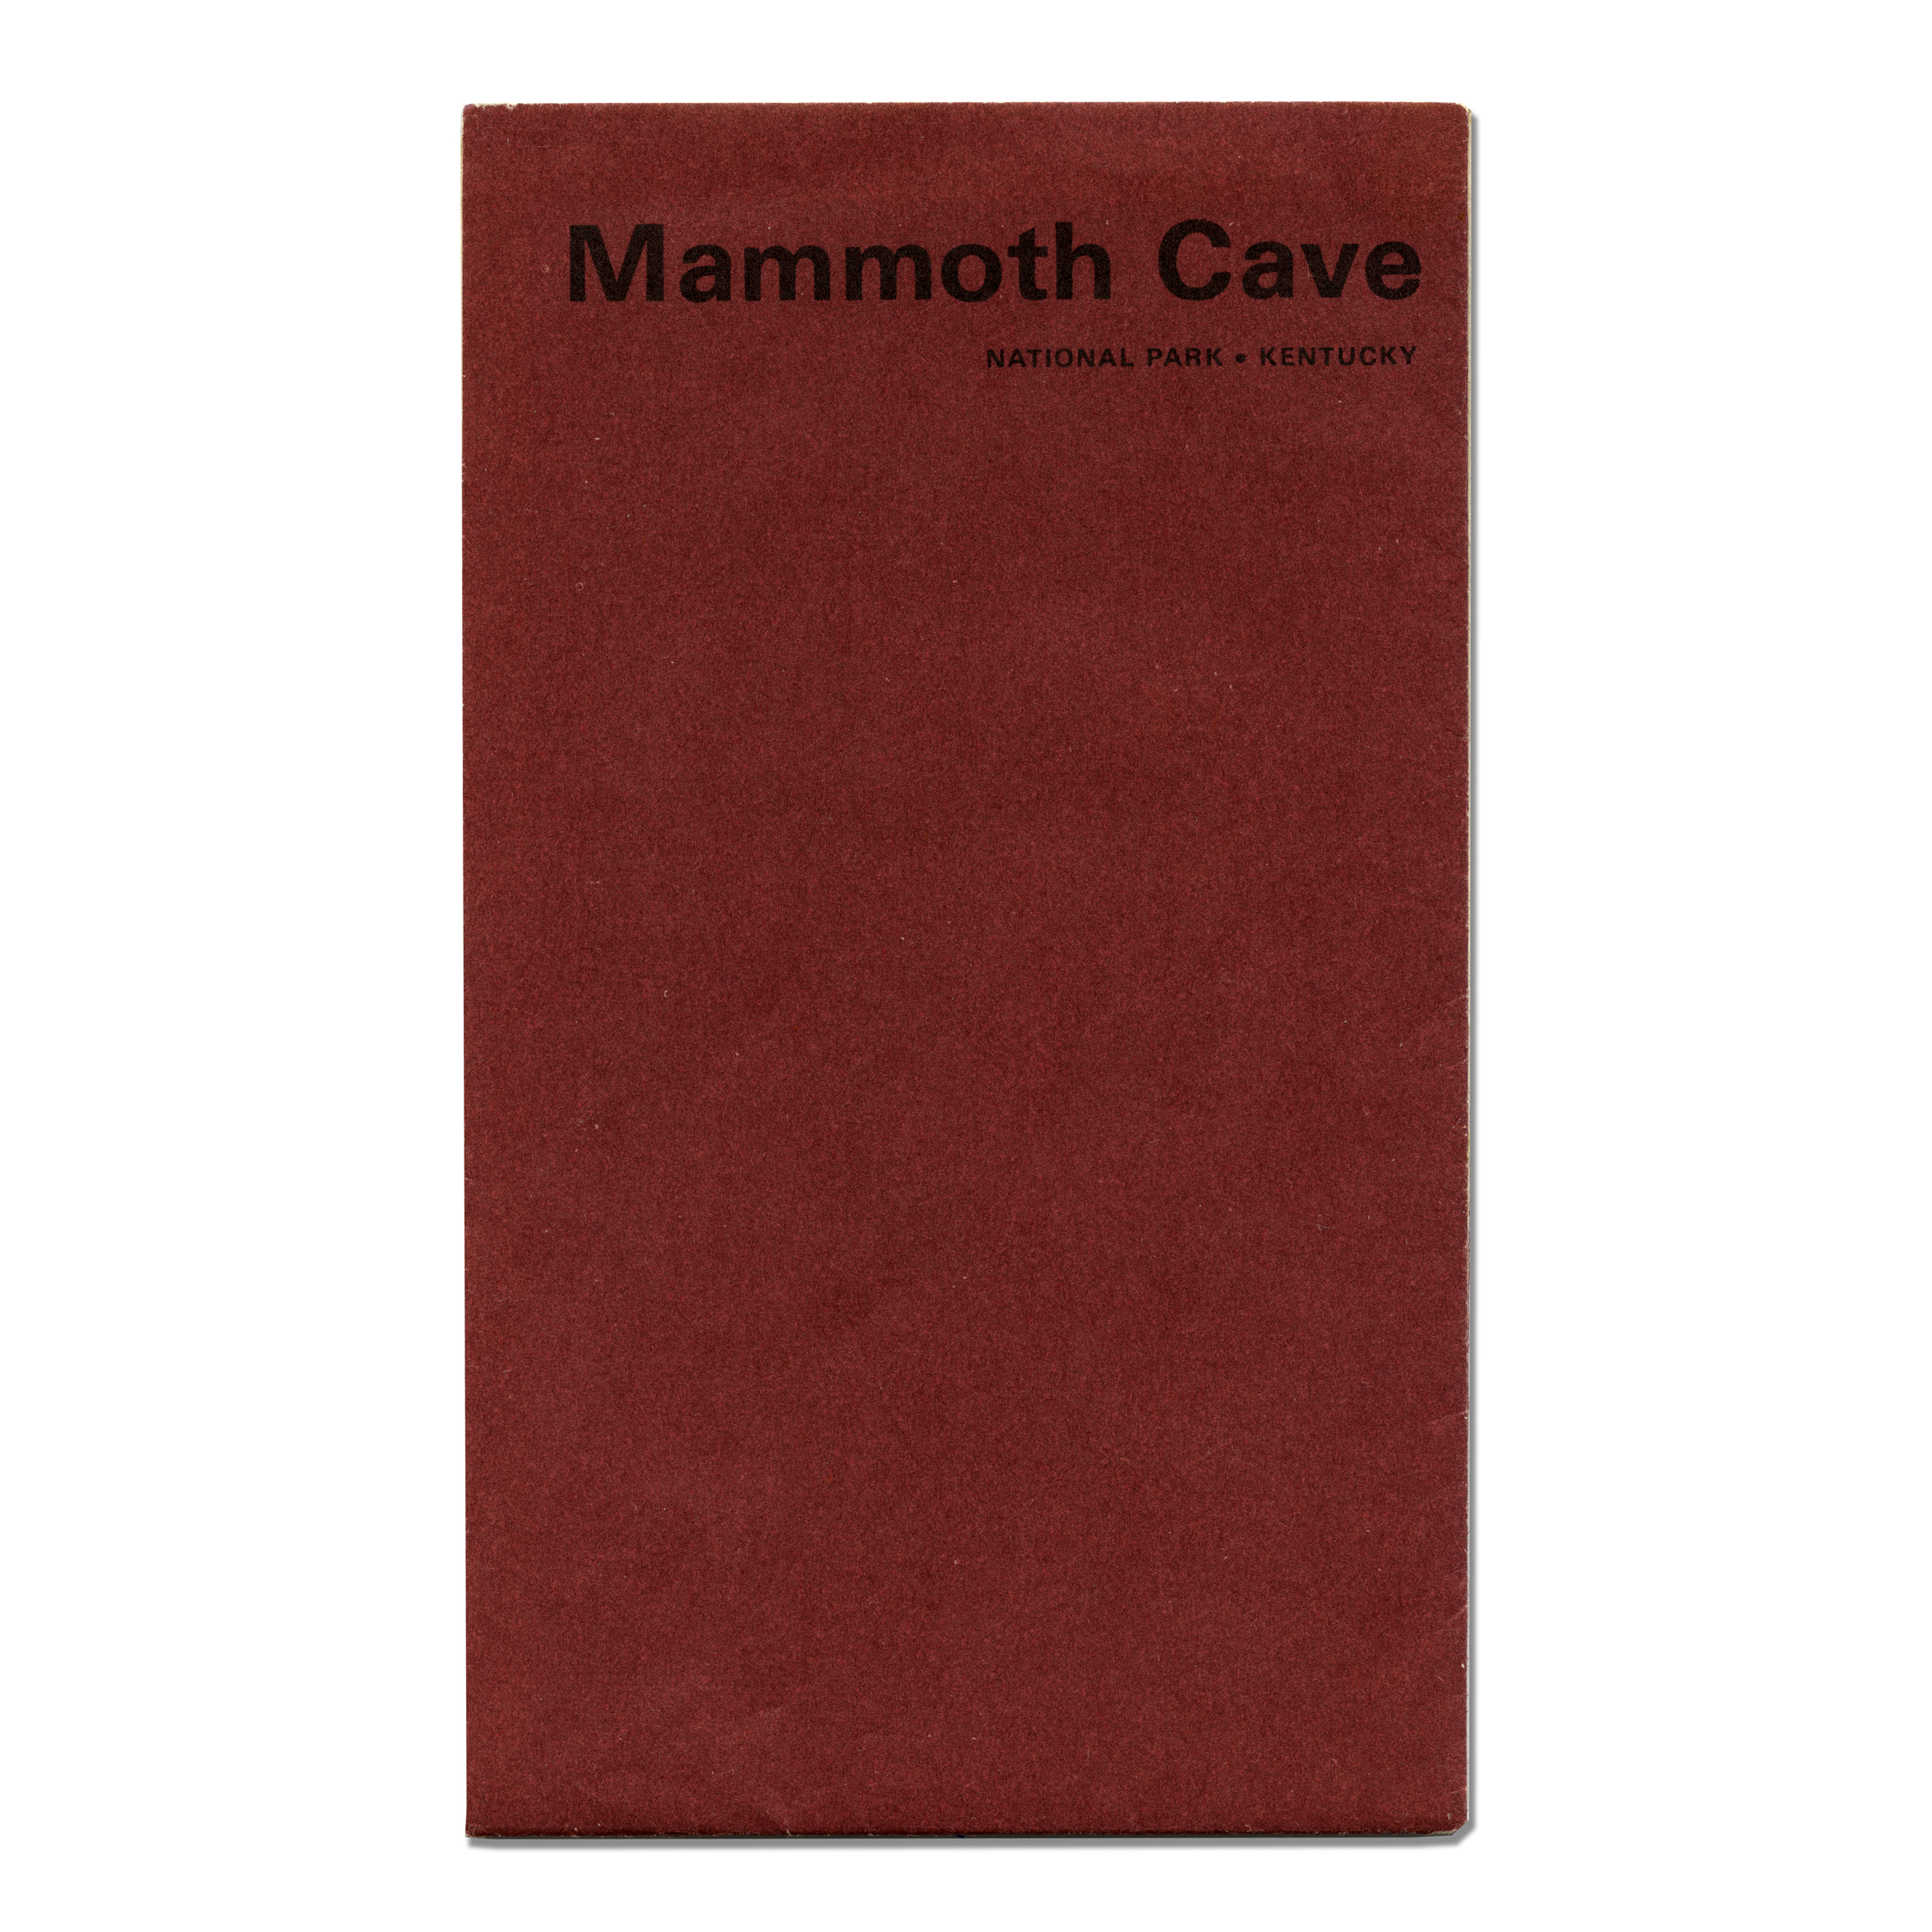 1967_mammoth_cave_national_park_brochure.jpg